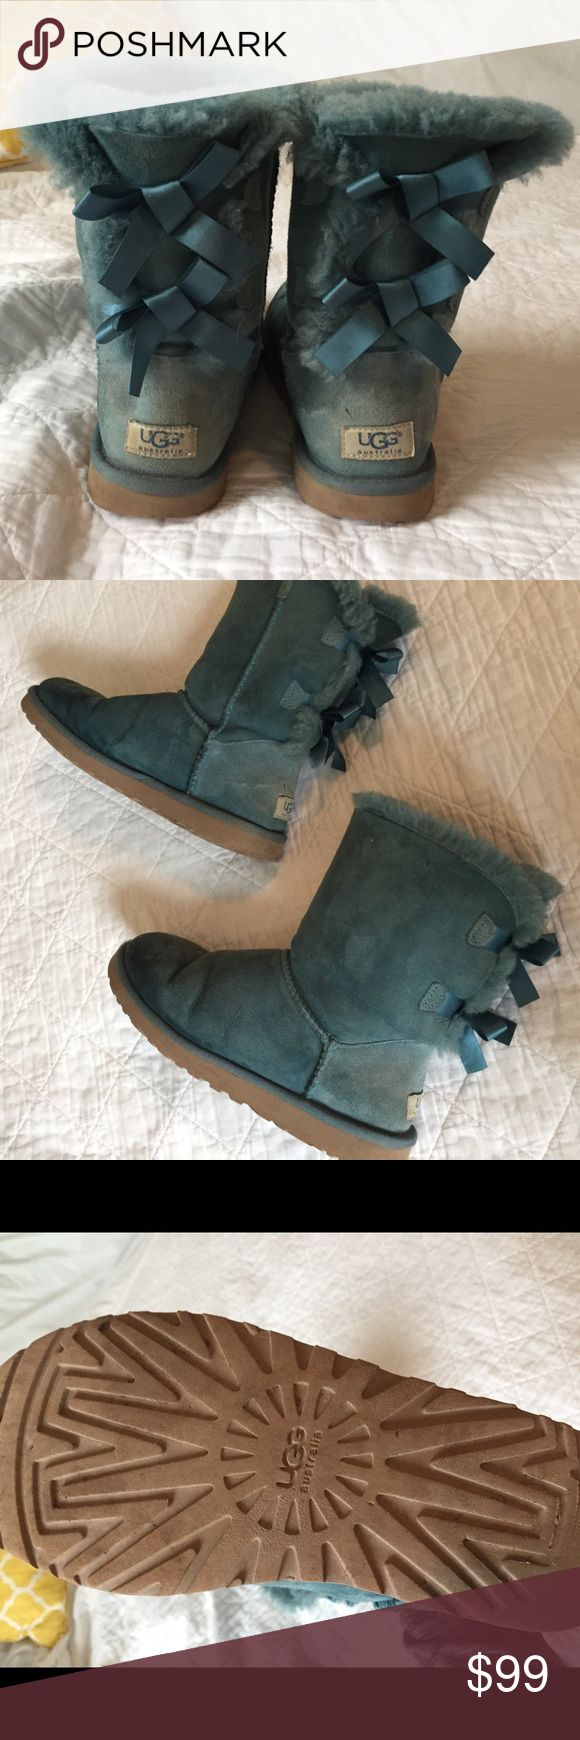 Bailey Bow Blue Uggs Very loved/used condition Very comfortable Size 8 UGG Shoes Winter & Rain Boots